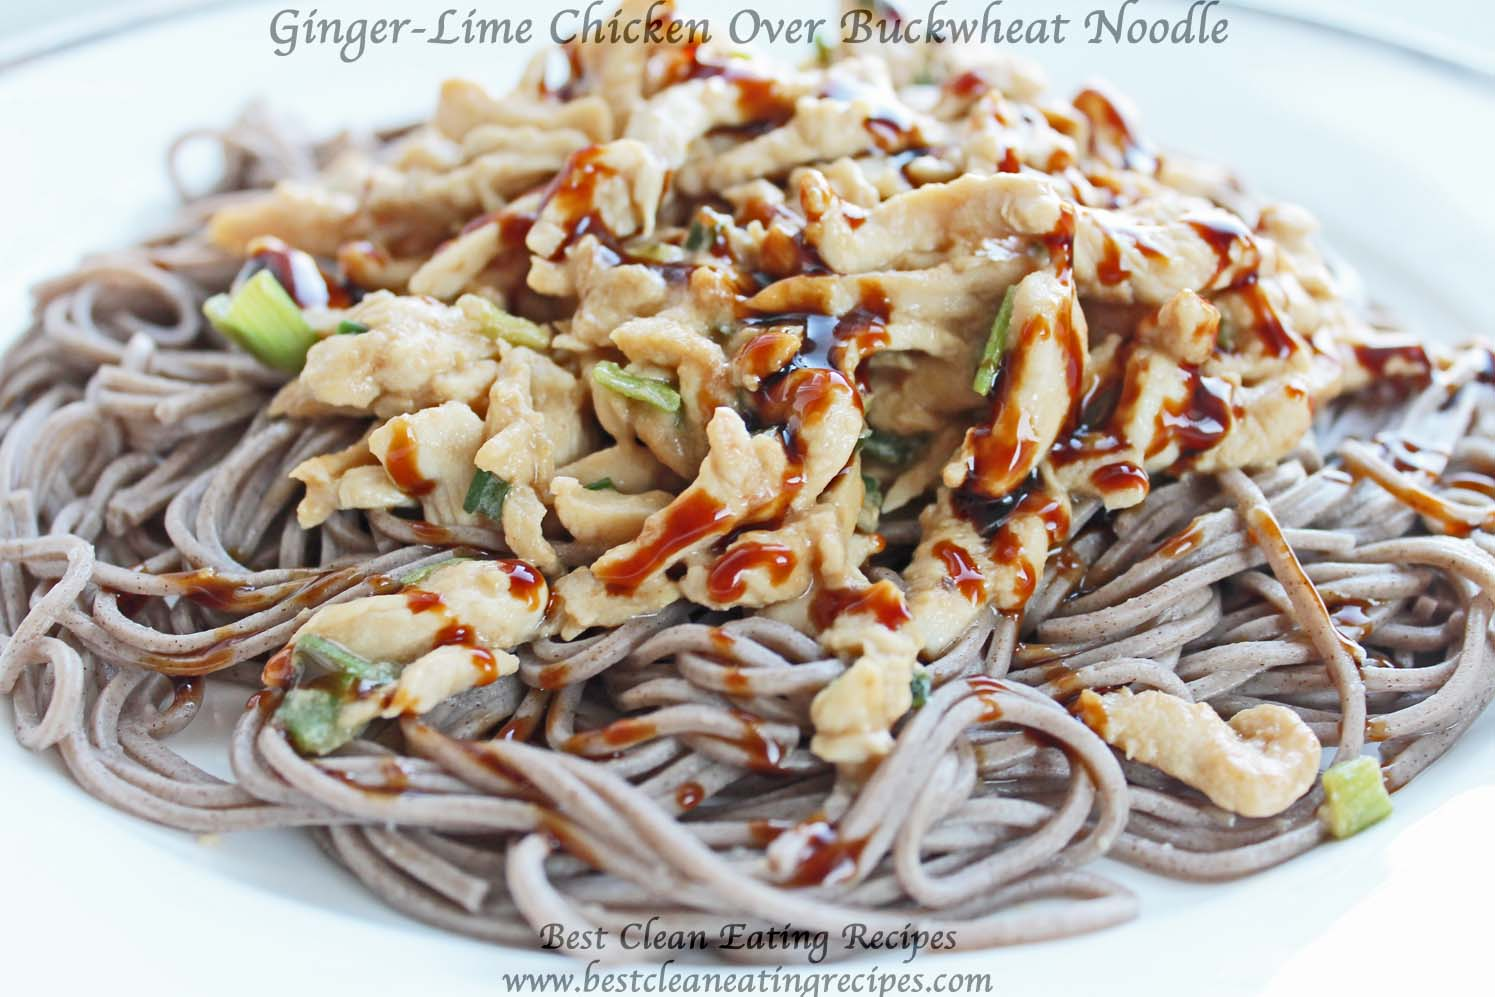 Clean Eating Dinner Recipe – Ginger-Lime Chicken Over Buckwheat Noodle